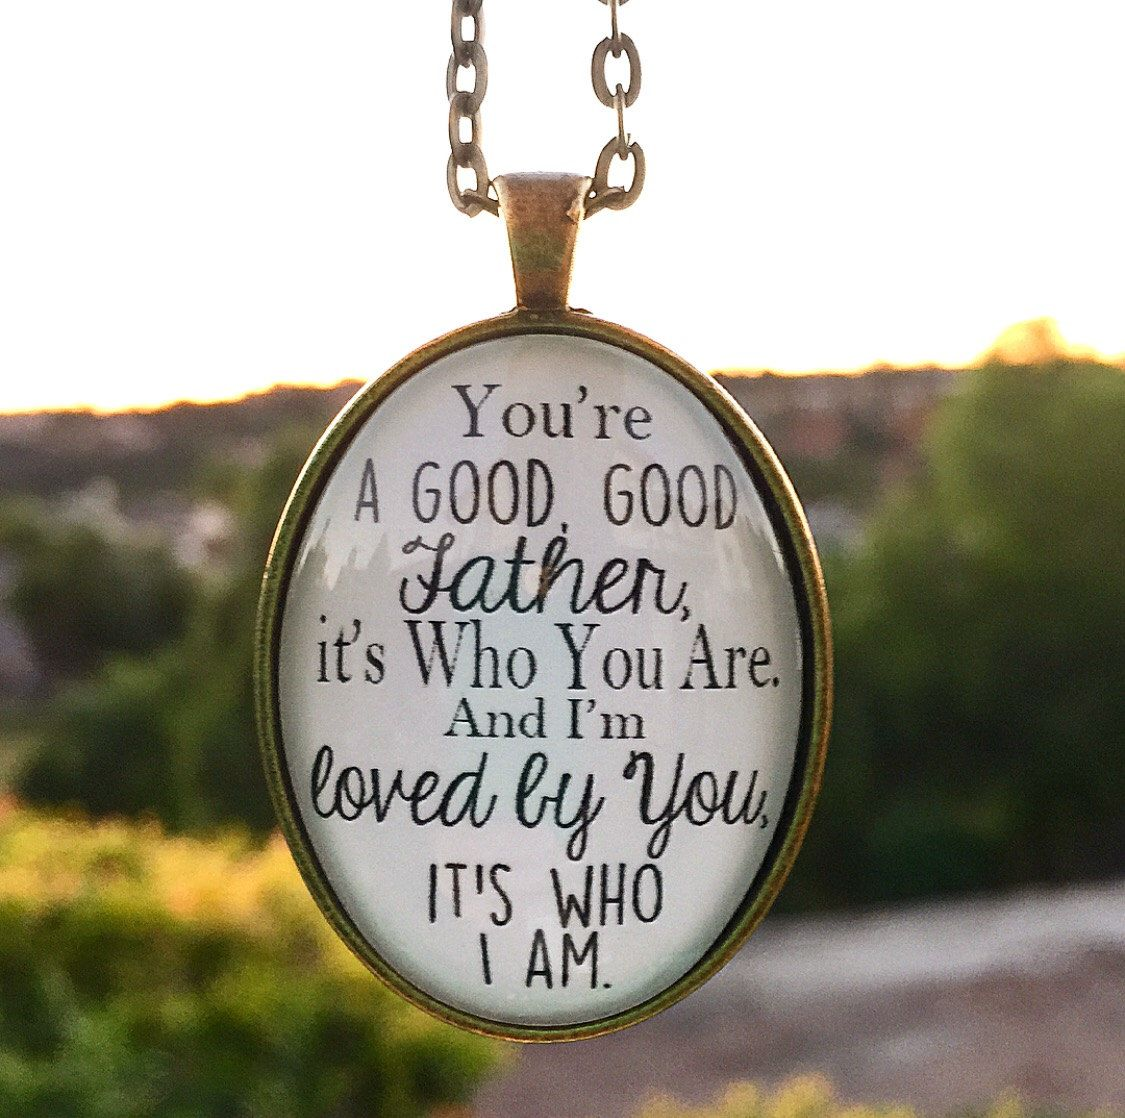 Good Good Father Lyrics House Fires Ii - Good good father pendant necklace you re a good good father it s